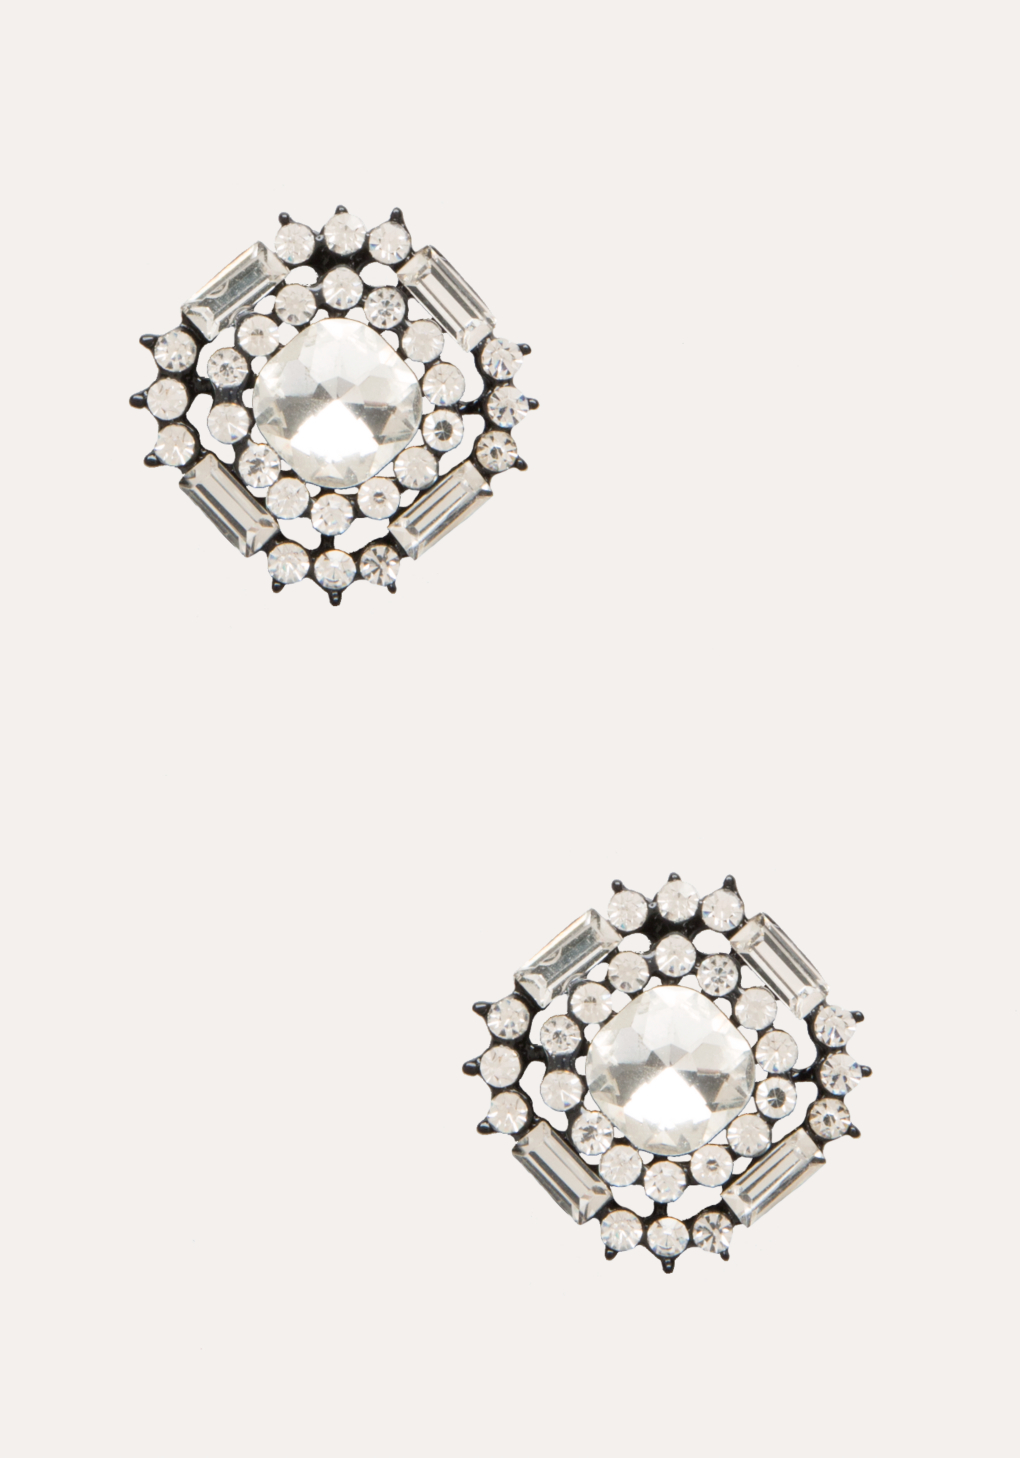 large earrings silver products crystal cc auth stud image chanel new